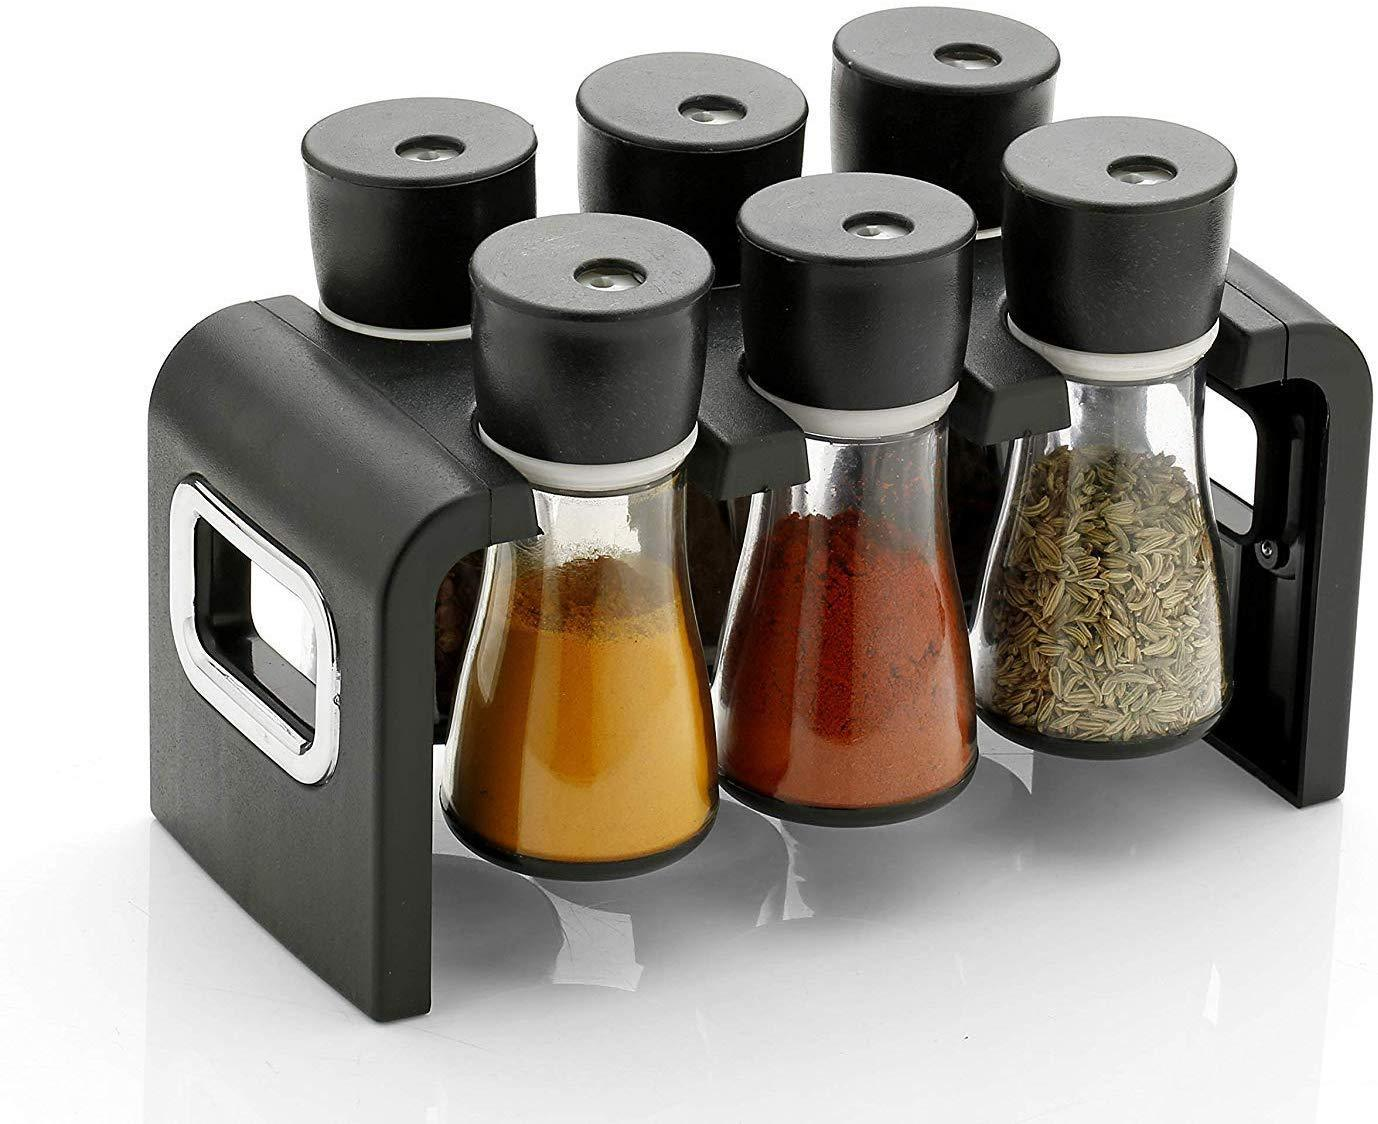 6-Jar Spice Rack - Kitchen Assistant India